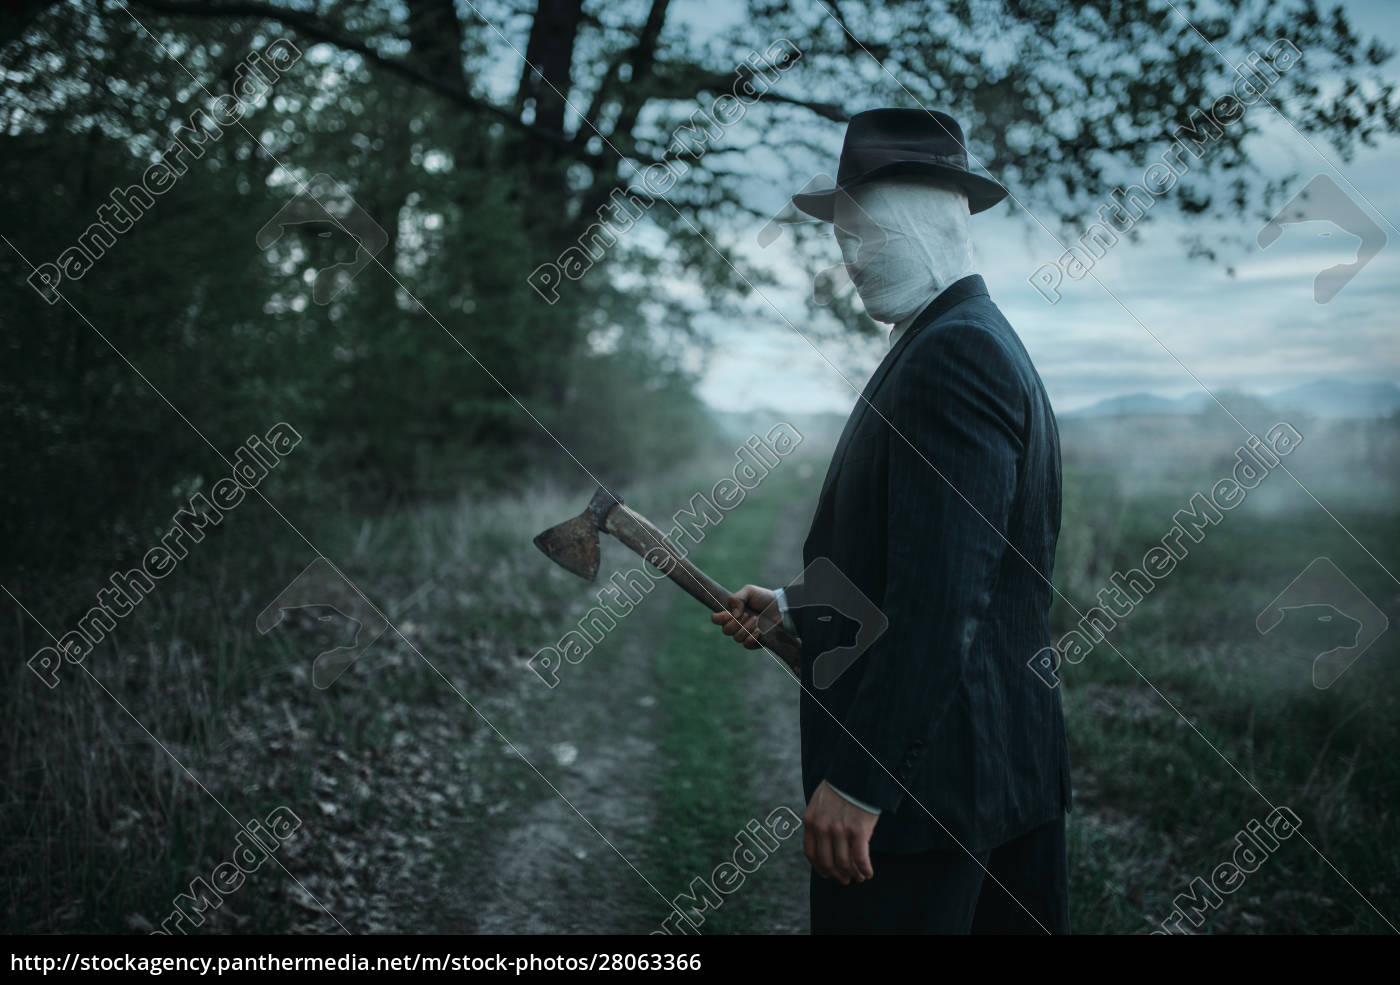 serial, maniac, with, axe, in, forest, - 28063366